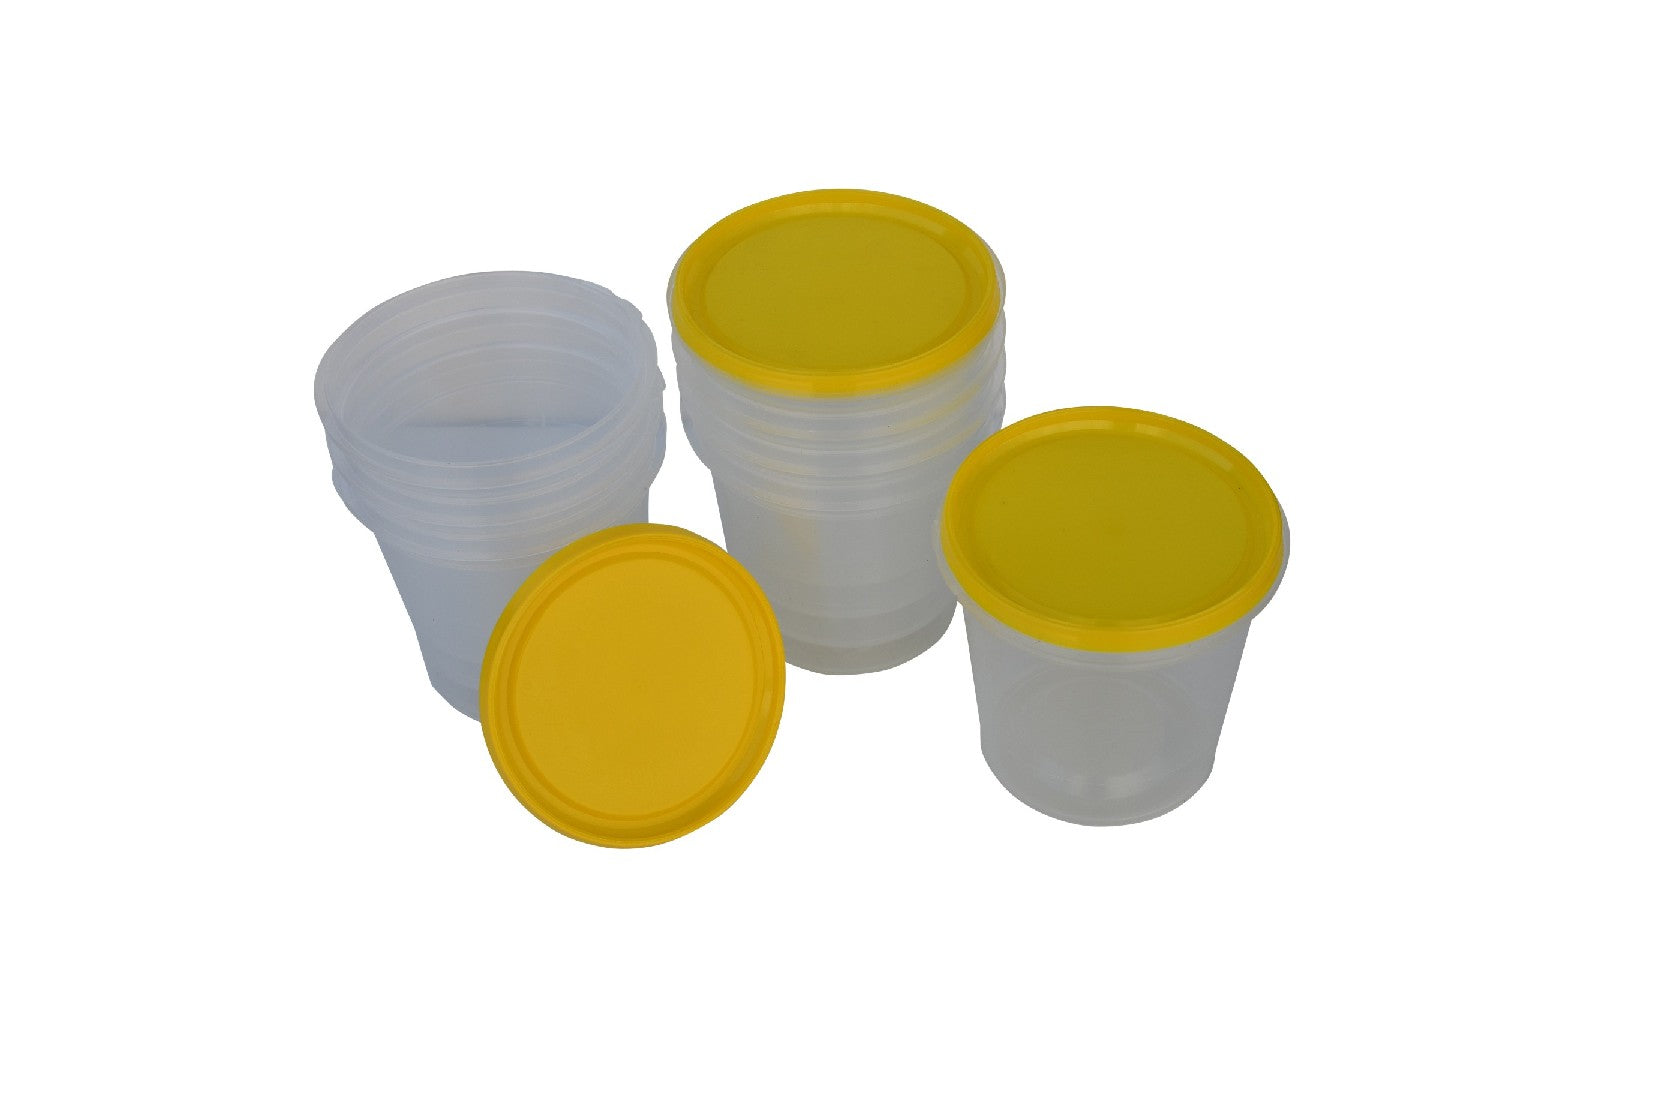 100 x Honey Containers 500 grams round